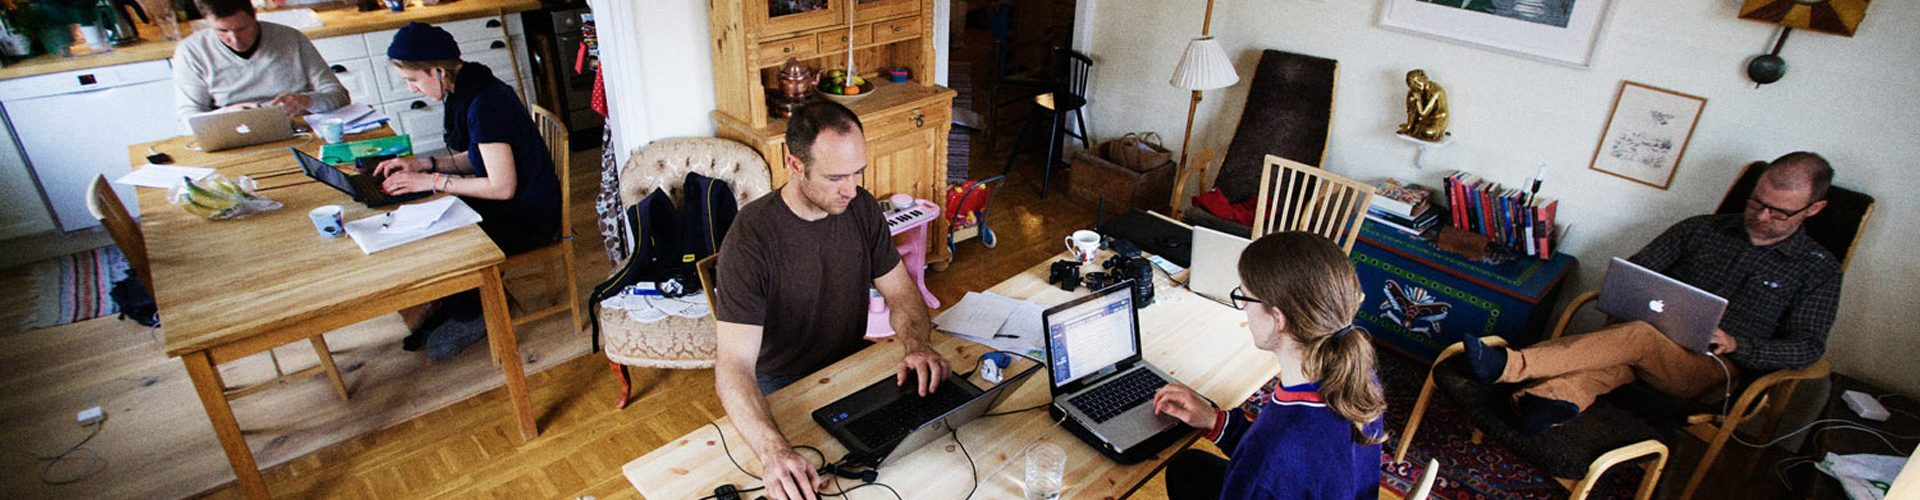 From Homeworking to Coworking